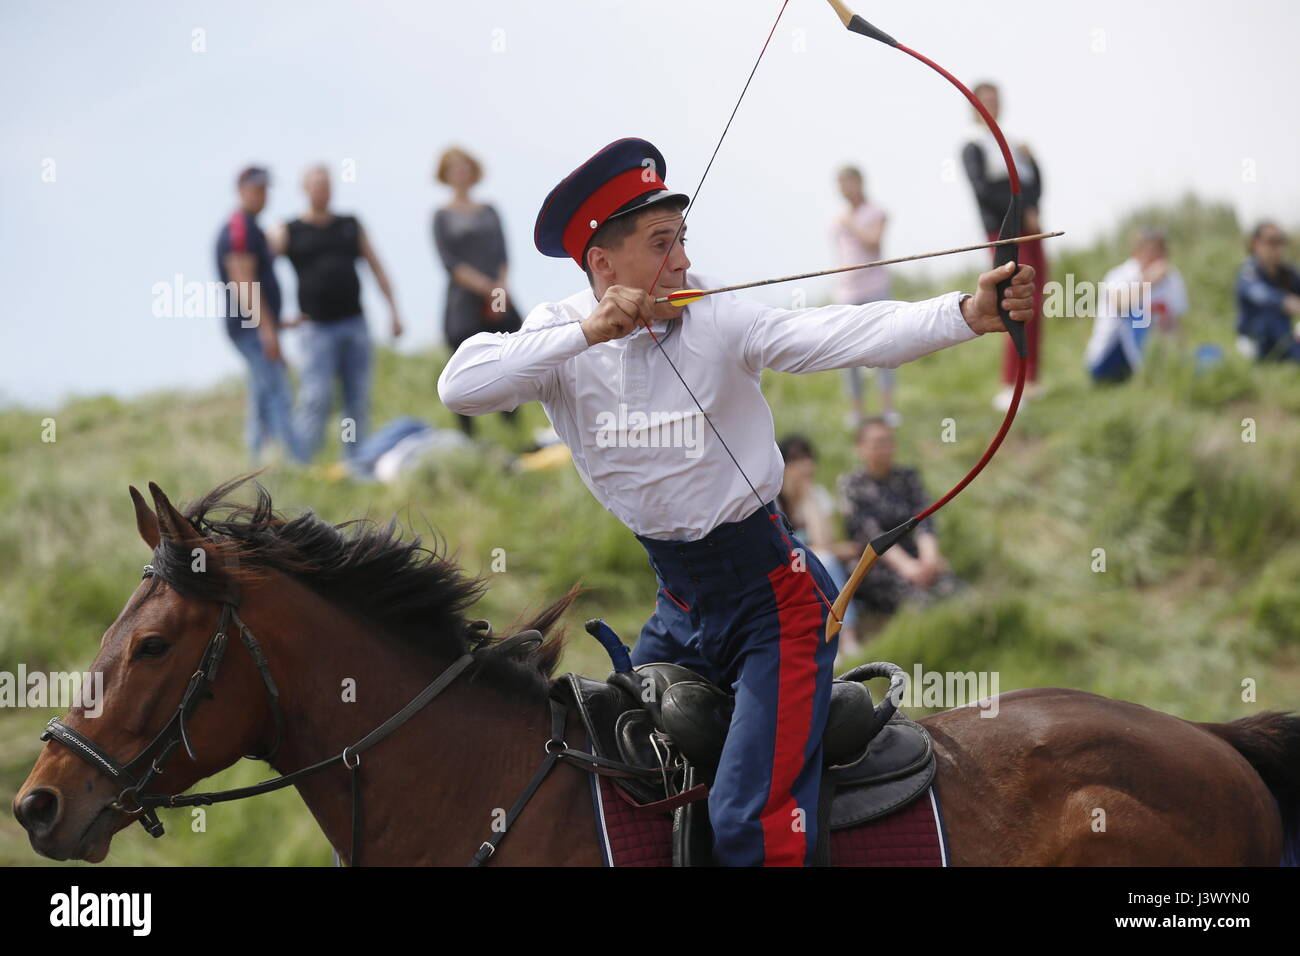 Rostov Region, Russia. 7th May, 2017. A participant in an archery contest at the Cossack national games, Shermitsii, Stock Photo